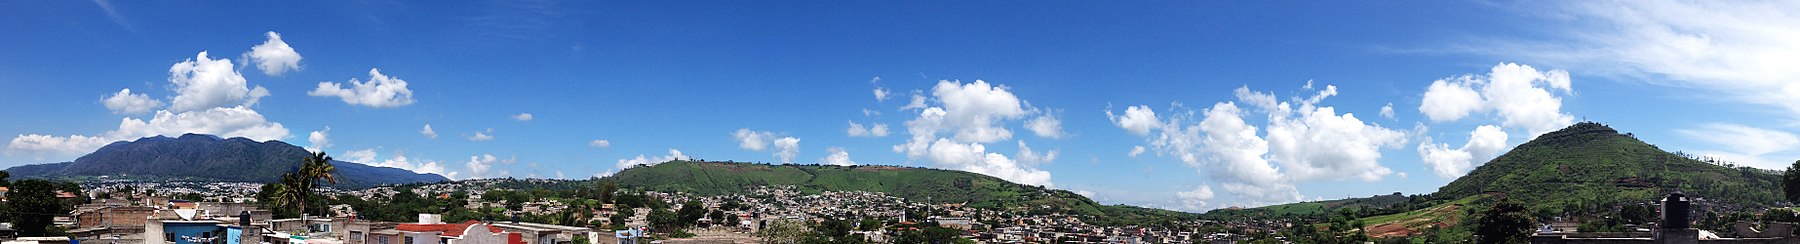 Tepic Mountains.JPG